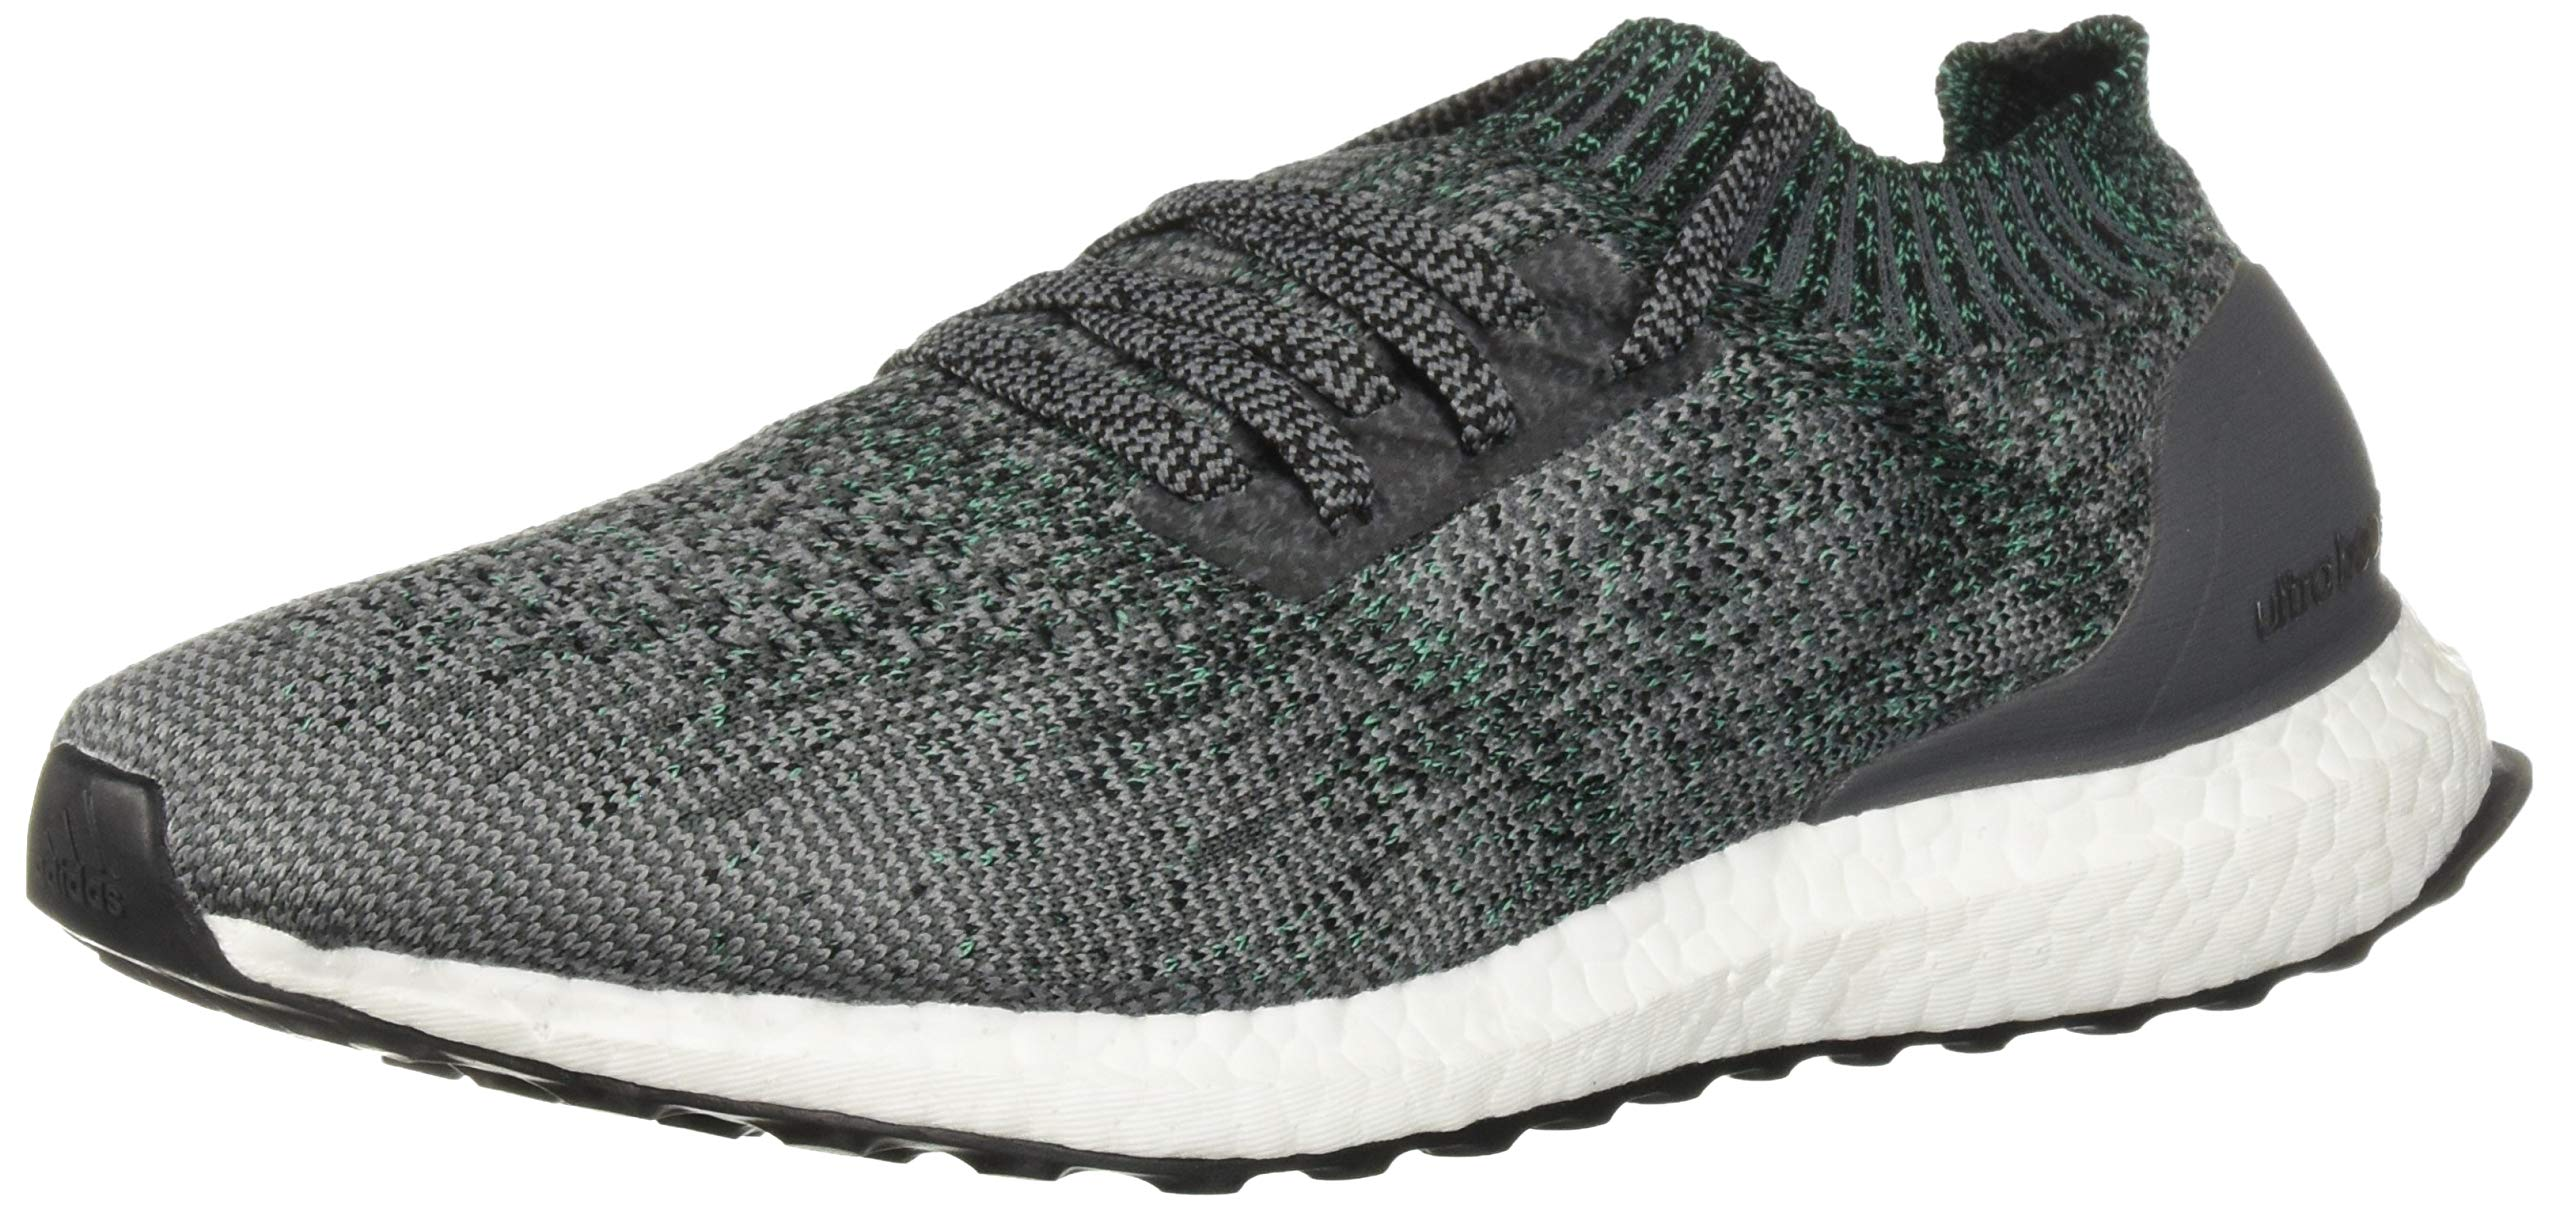 74ea197ed46 Galleon - Adidas Men s Ultraboost Uncaged